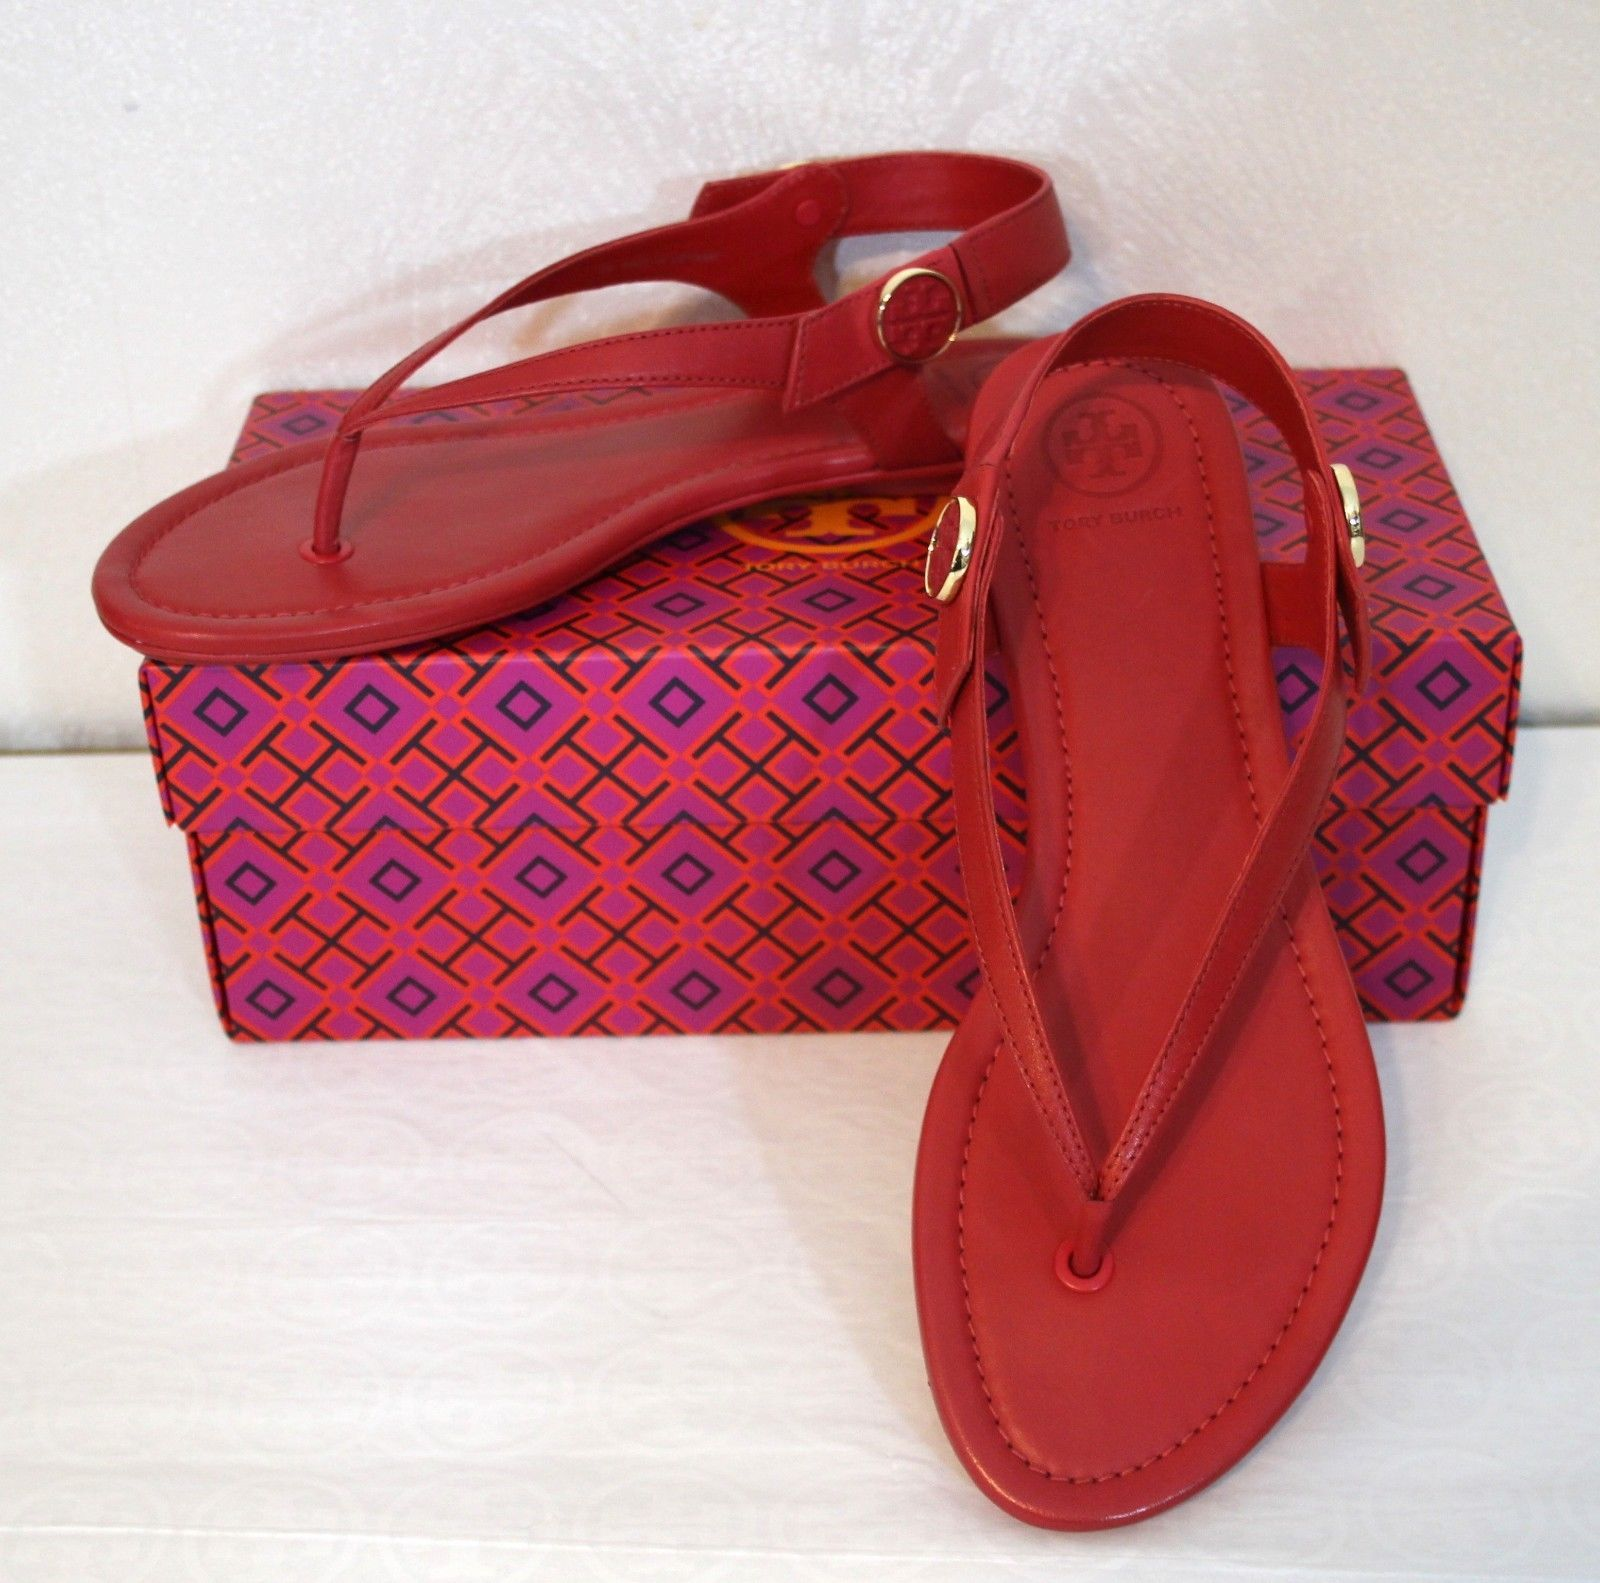 dd8c1272bce4 Tory Burch Minnie Travel Sandal Size 8 Red and 50 similar items. 57